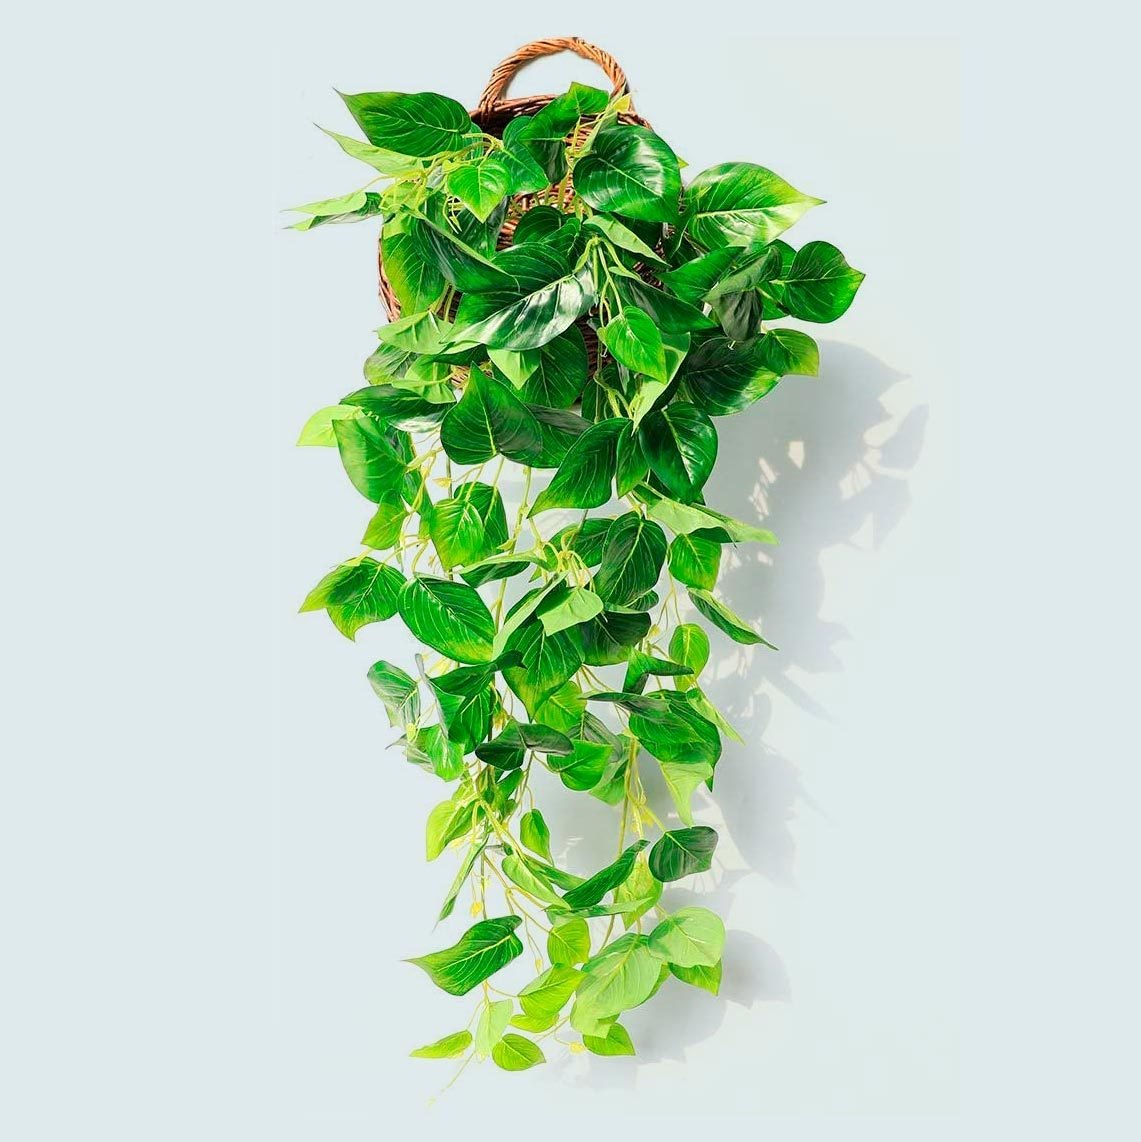 Justoyou Artificial Hanging Plants Ivy Vine